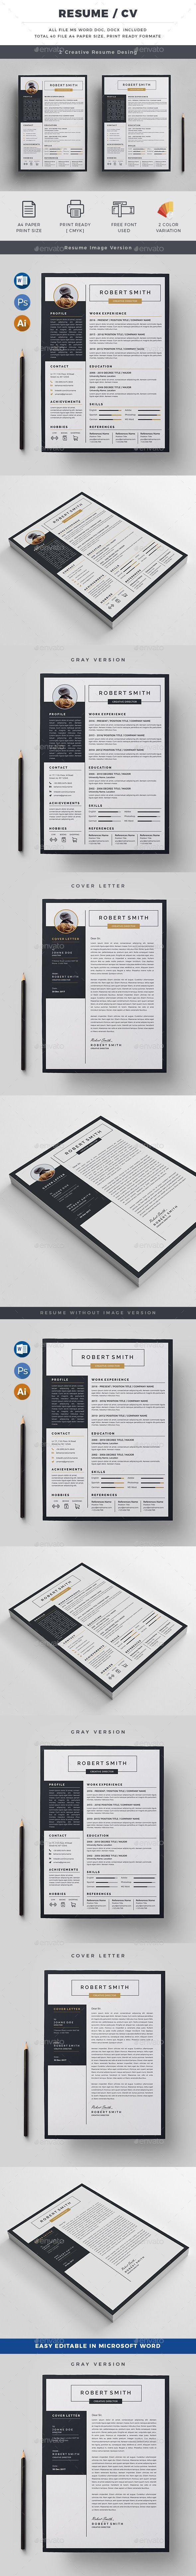 Resume - Resumes Stationery Download here: https://graphicriver.net/item/resume/19980872?ref=classicdesignp